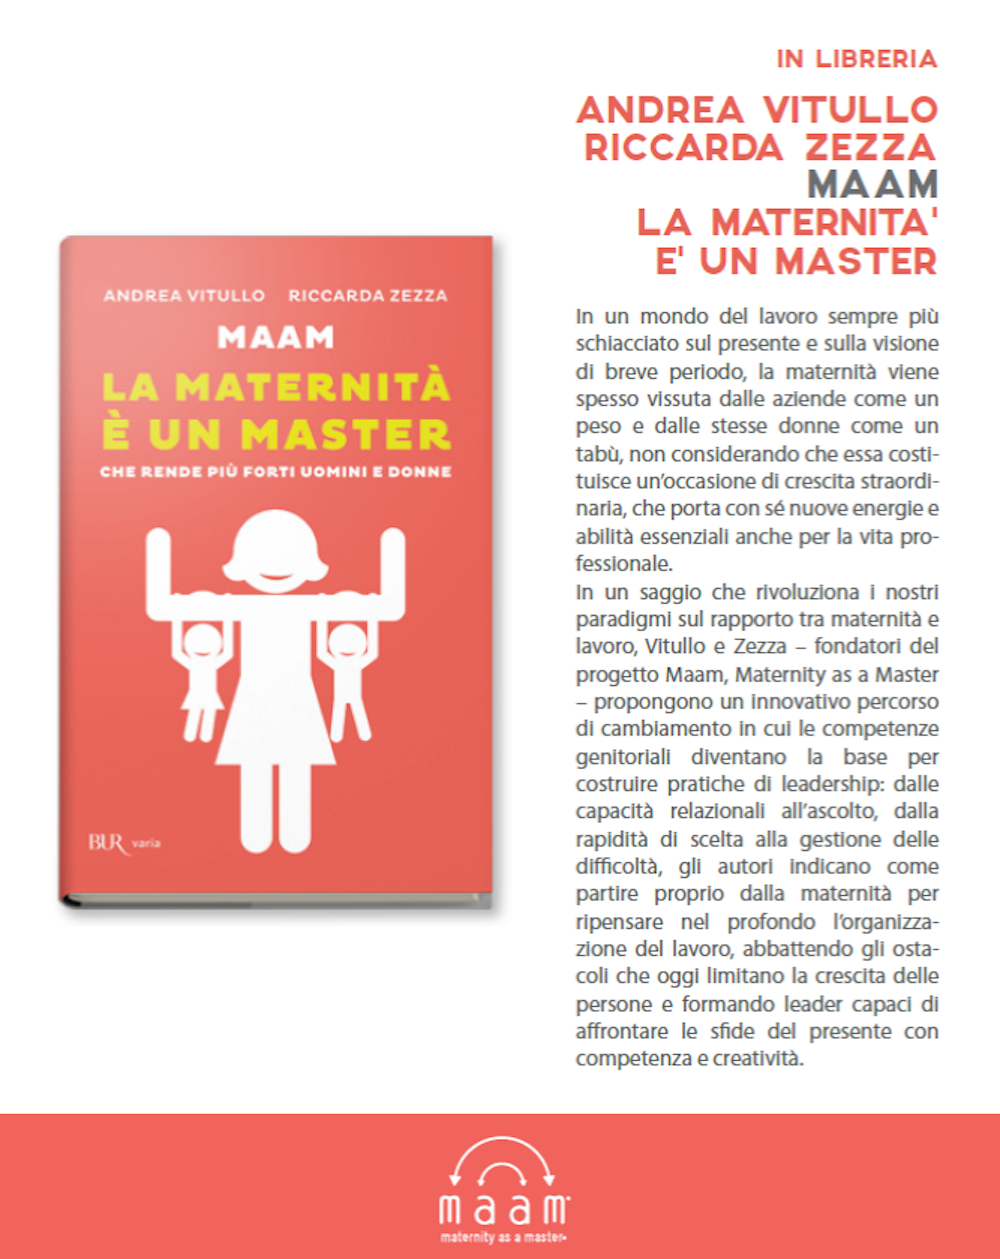 MAAM – maternity as a master